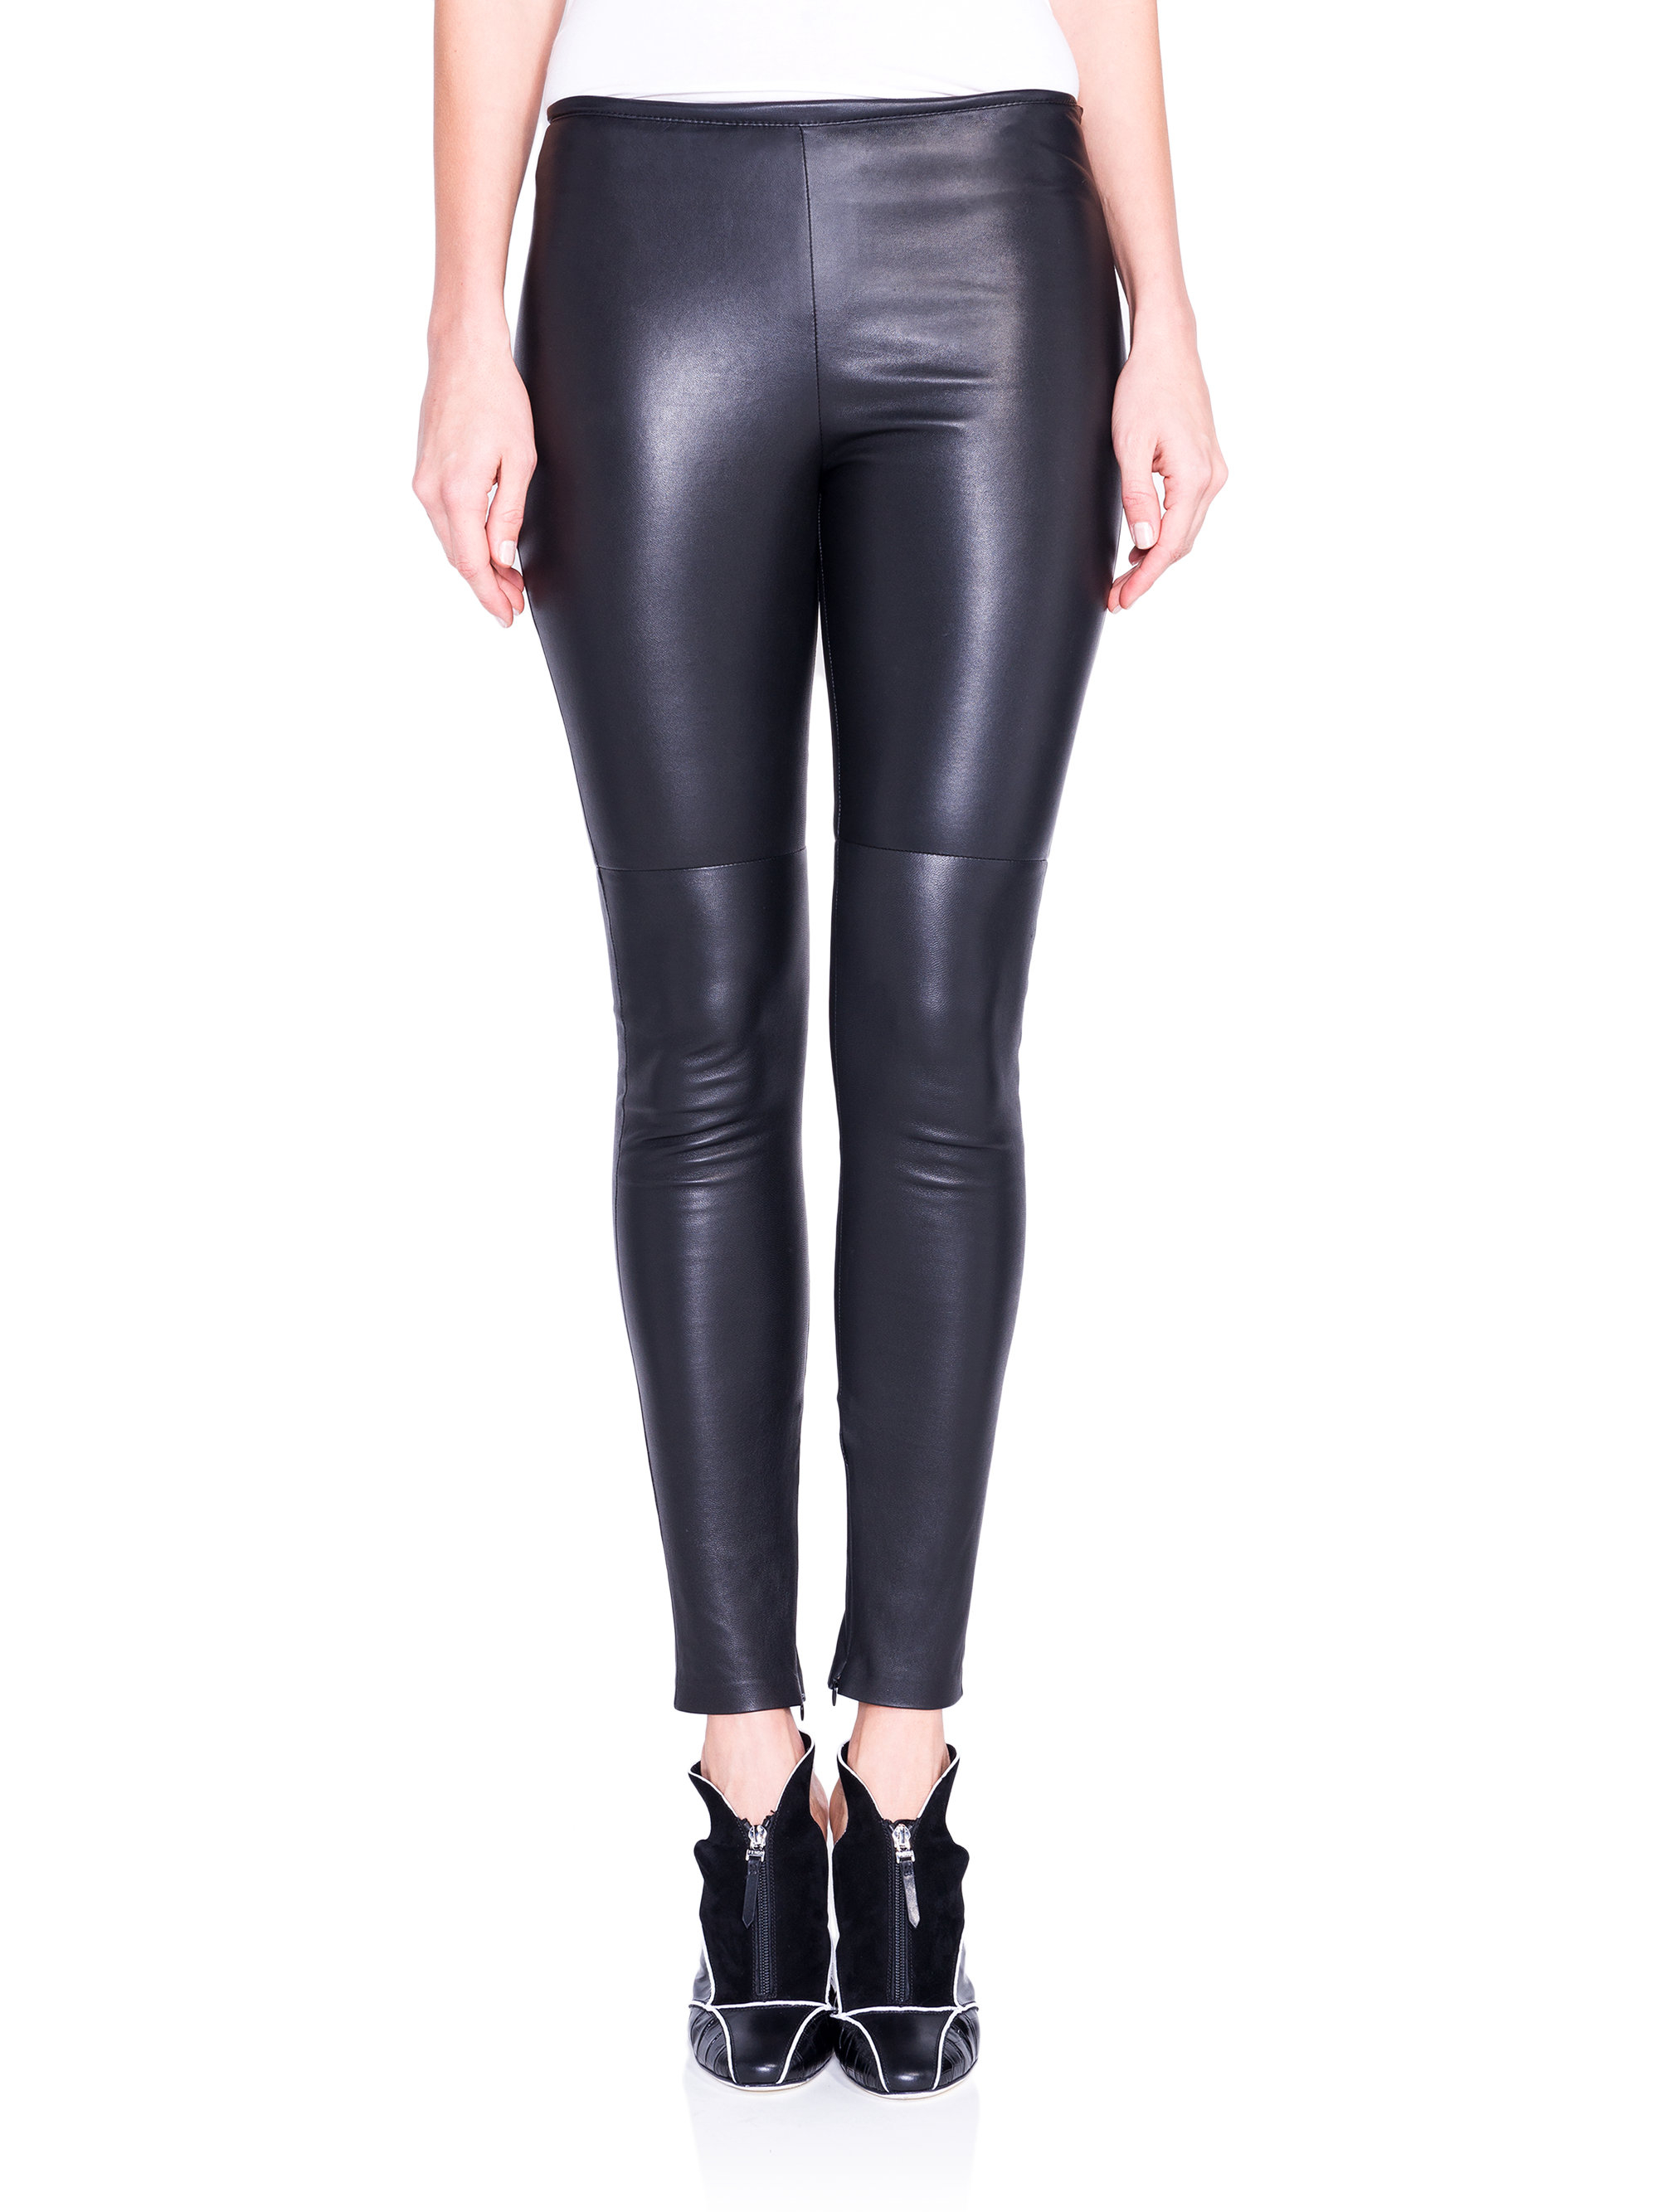 2f45c93295b Gallery. Previously sold at: Saks Fifth Avenue · Women's Leather Leggings